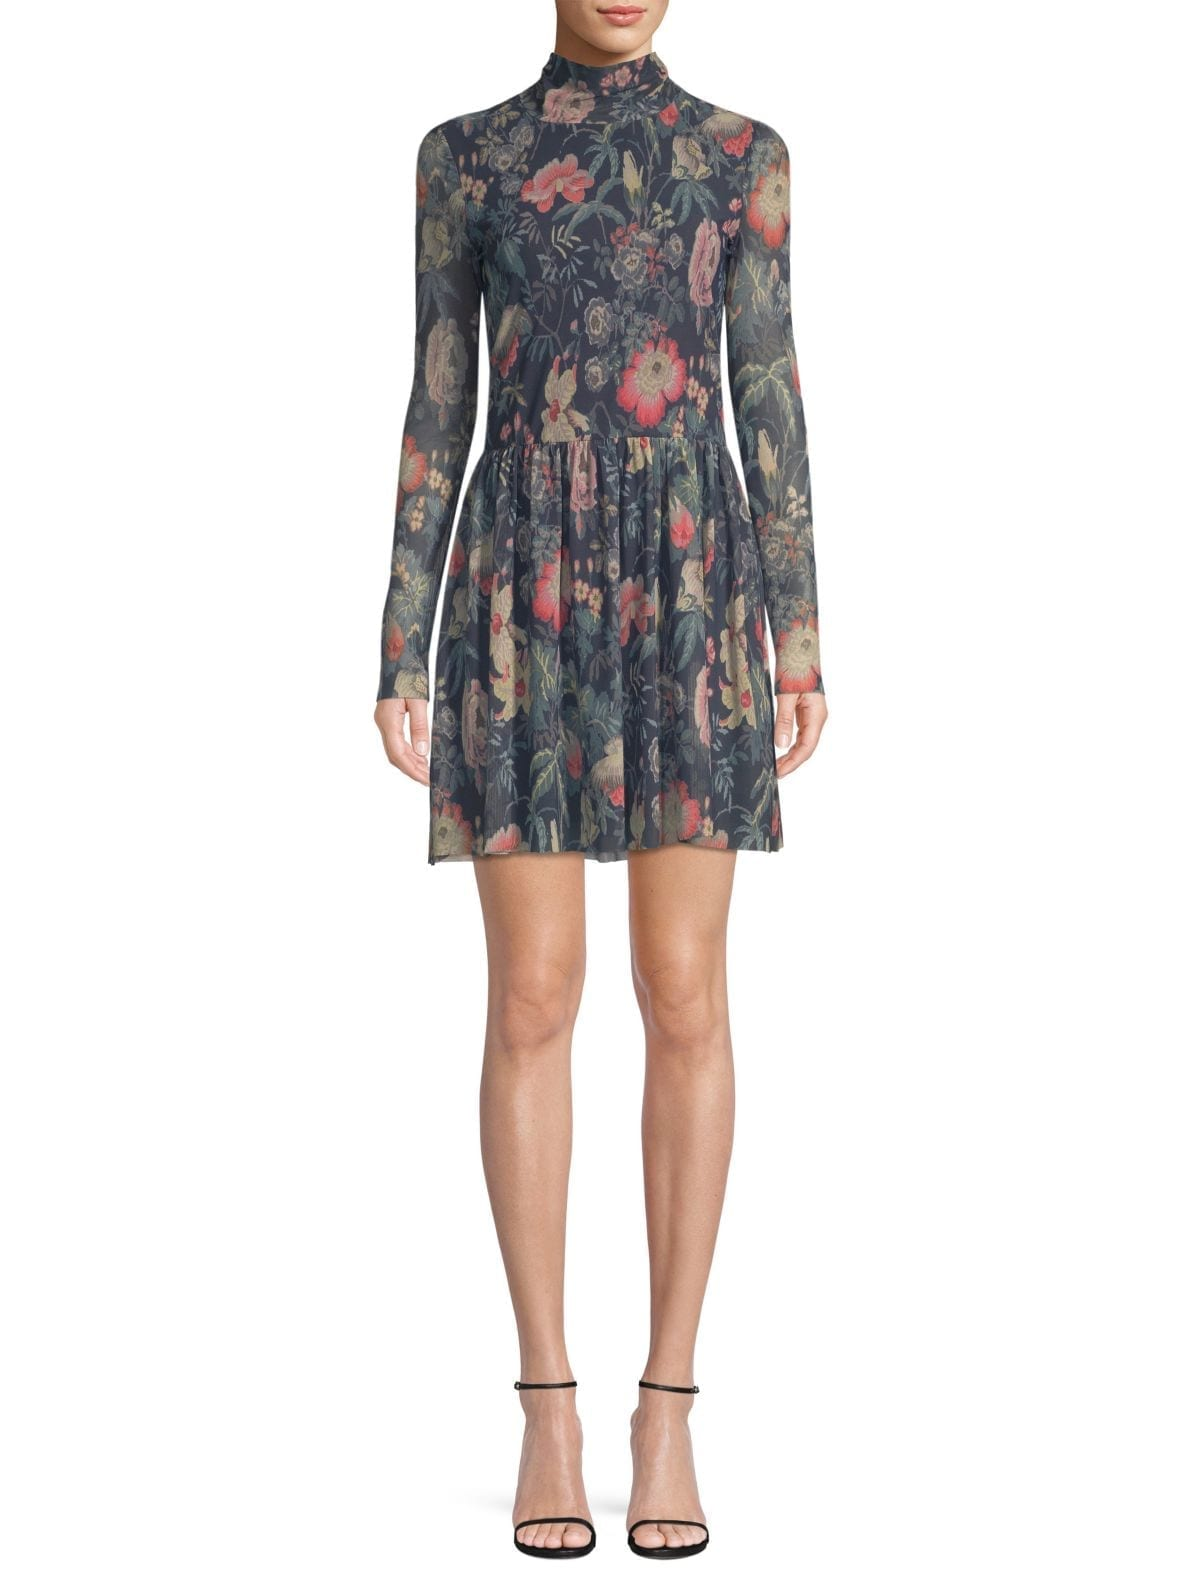 LA VIE REBECCA TAYLOR Faded Floral Fit-&-Flare Deep Green Dress